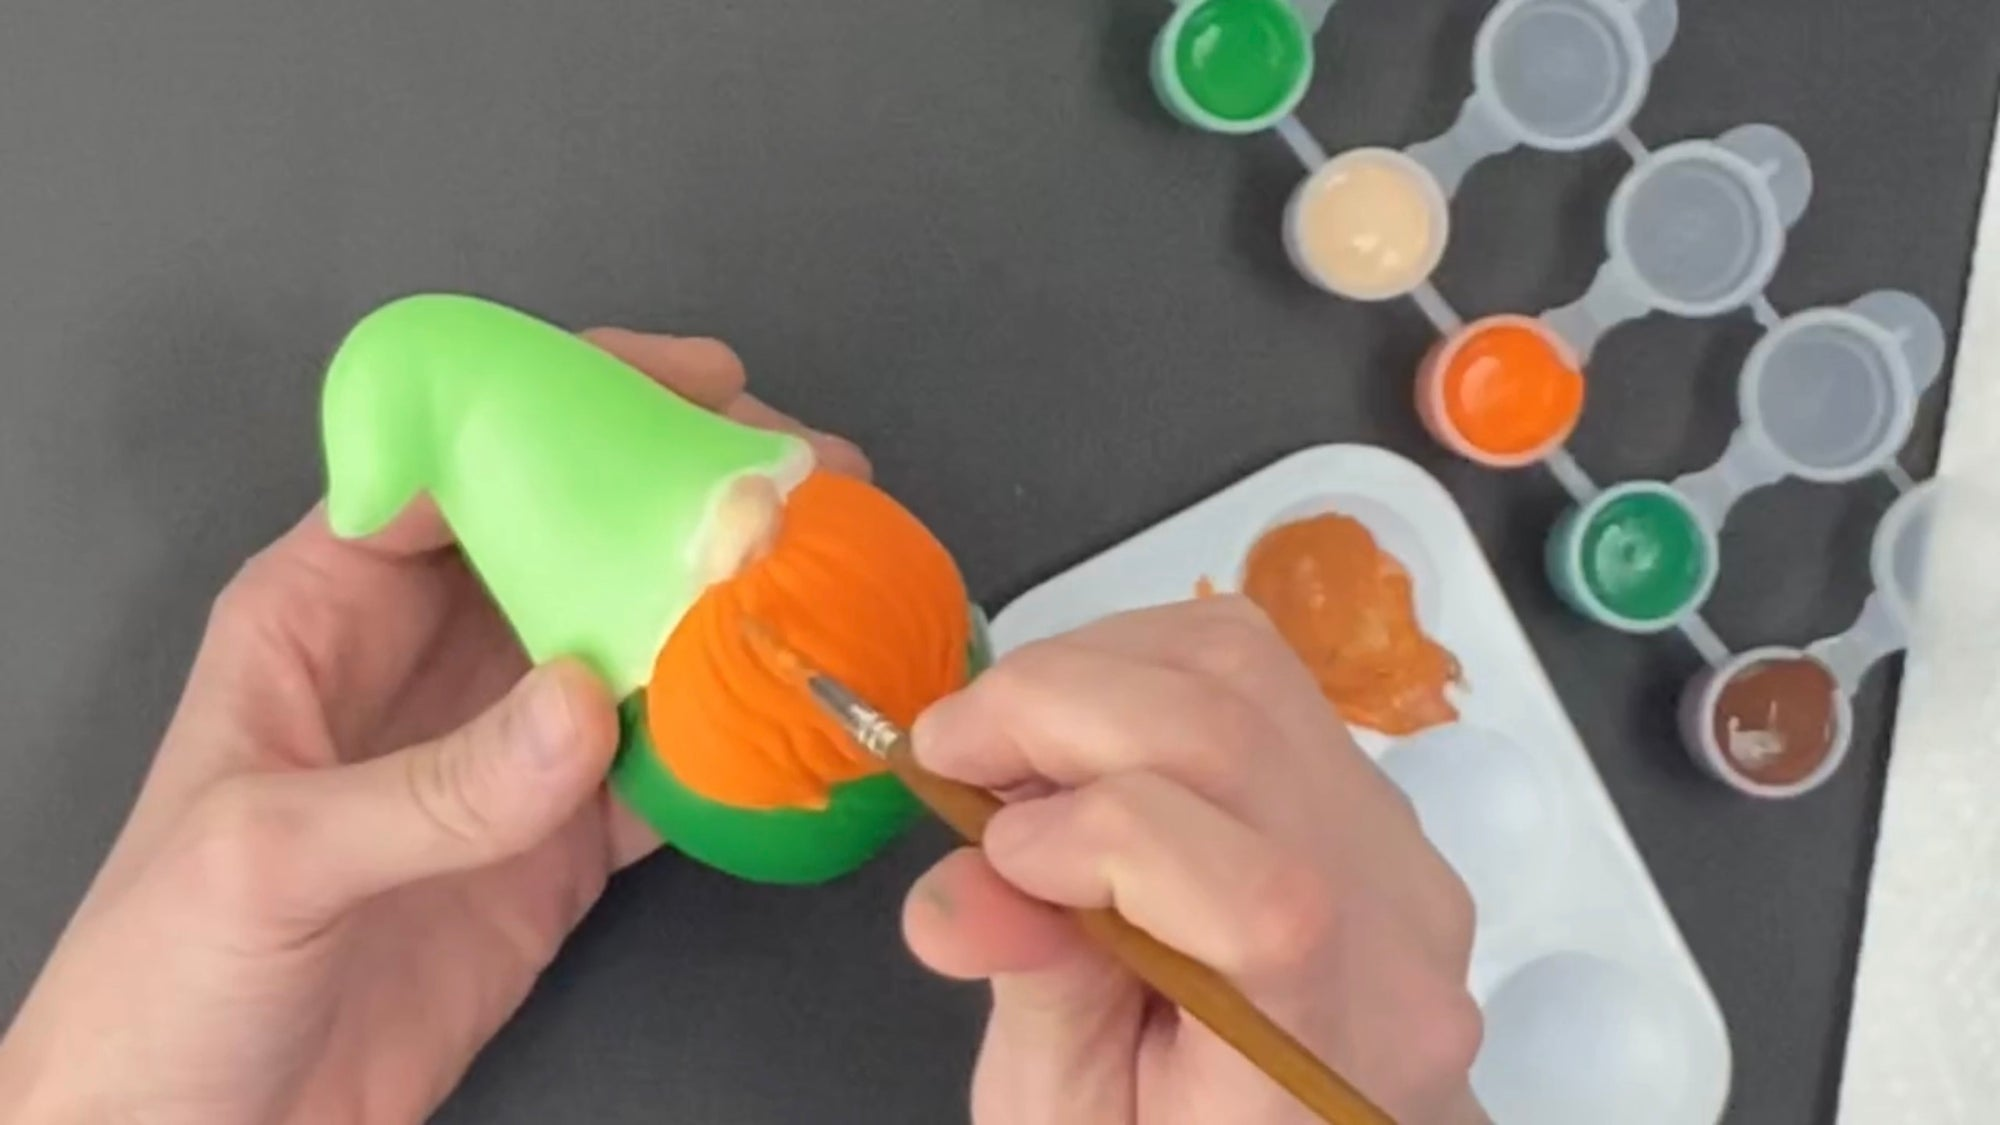 St. Patty's Day Gnome Painting Tutorial is now LIVE on Youtube!